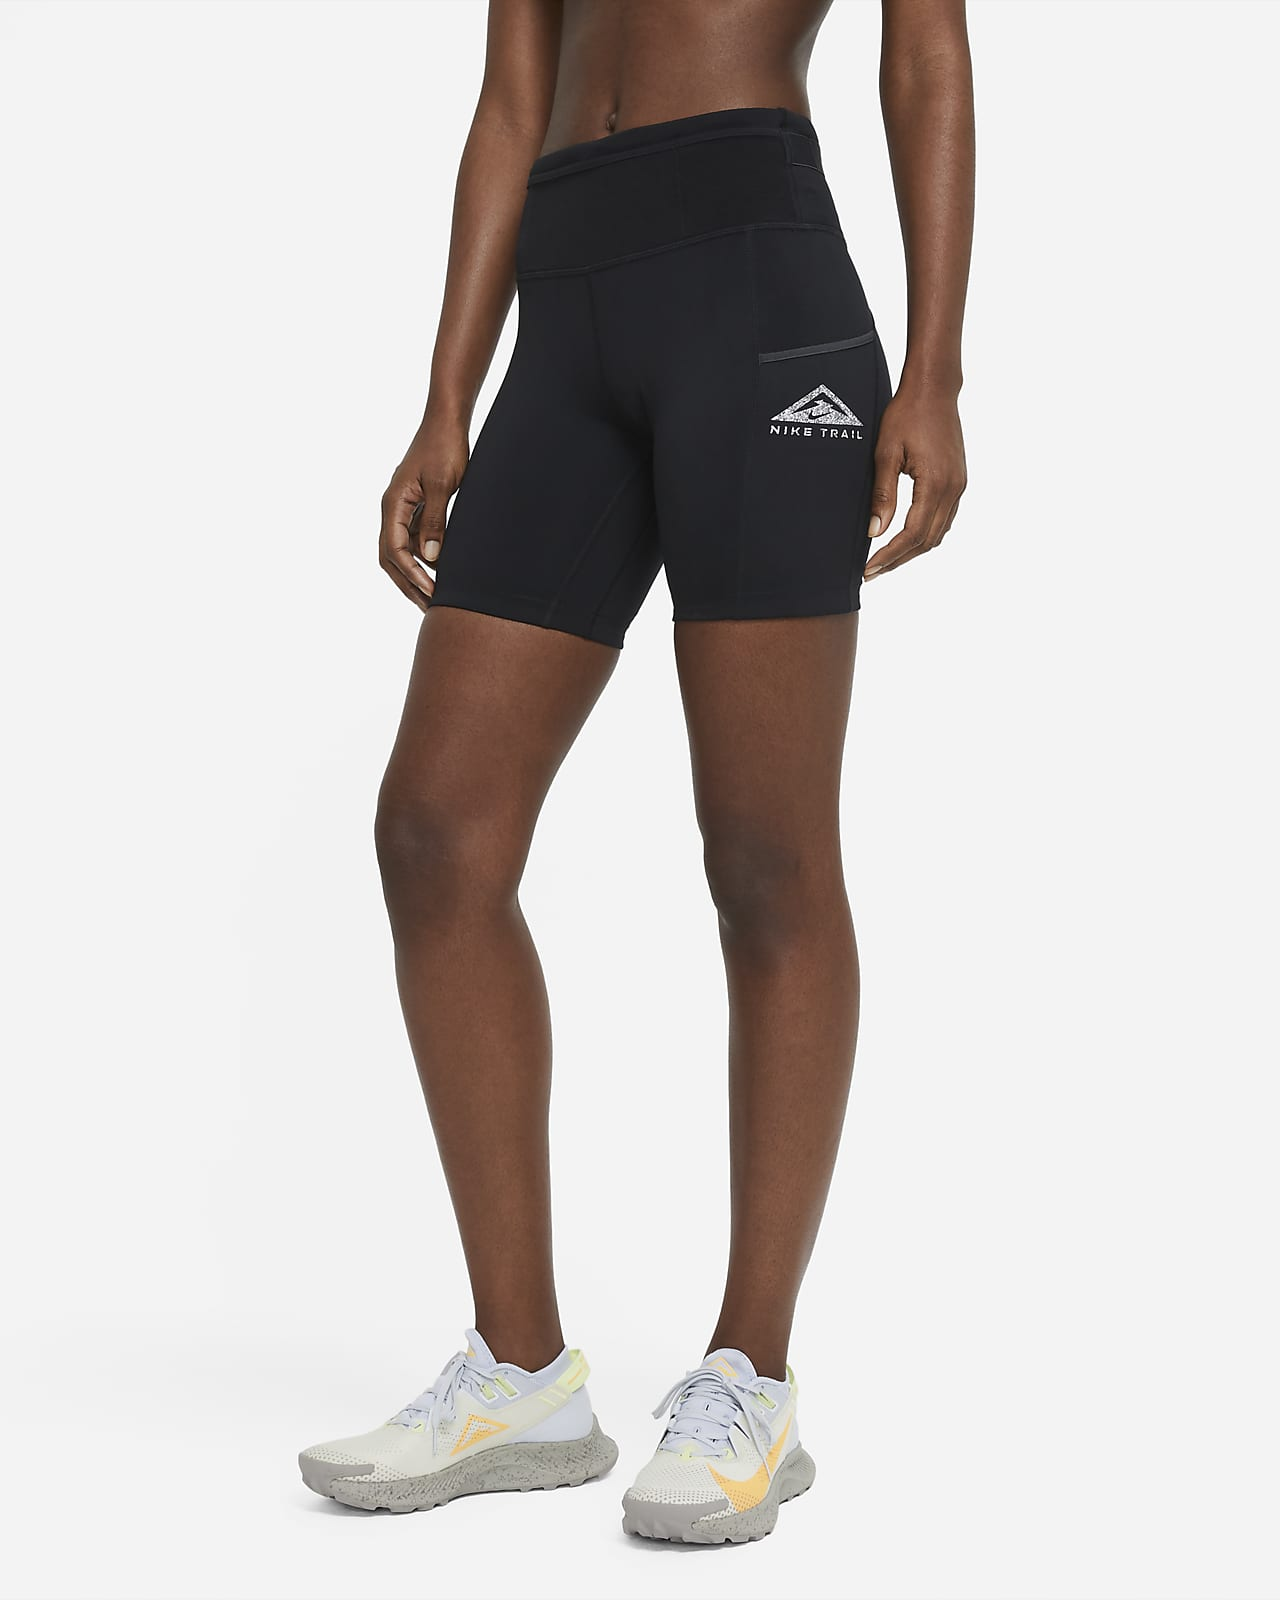 Shorts de trail running para mujer Nike Epic Luxe